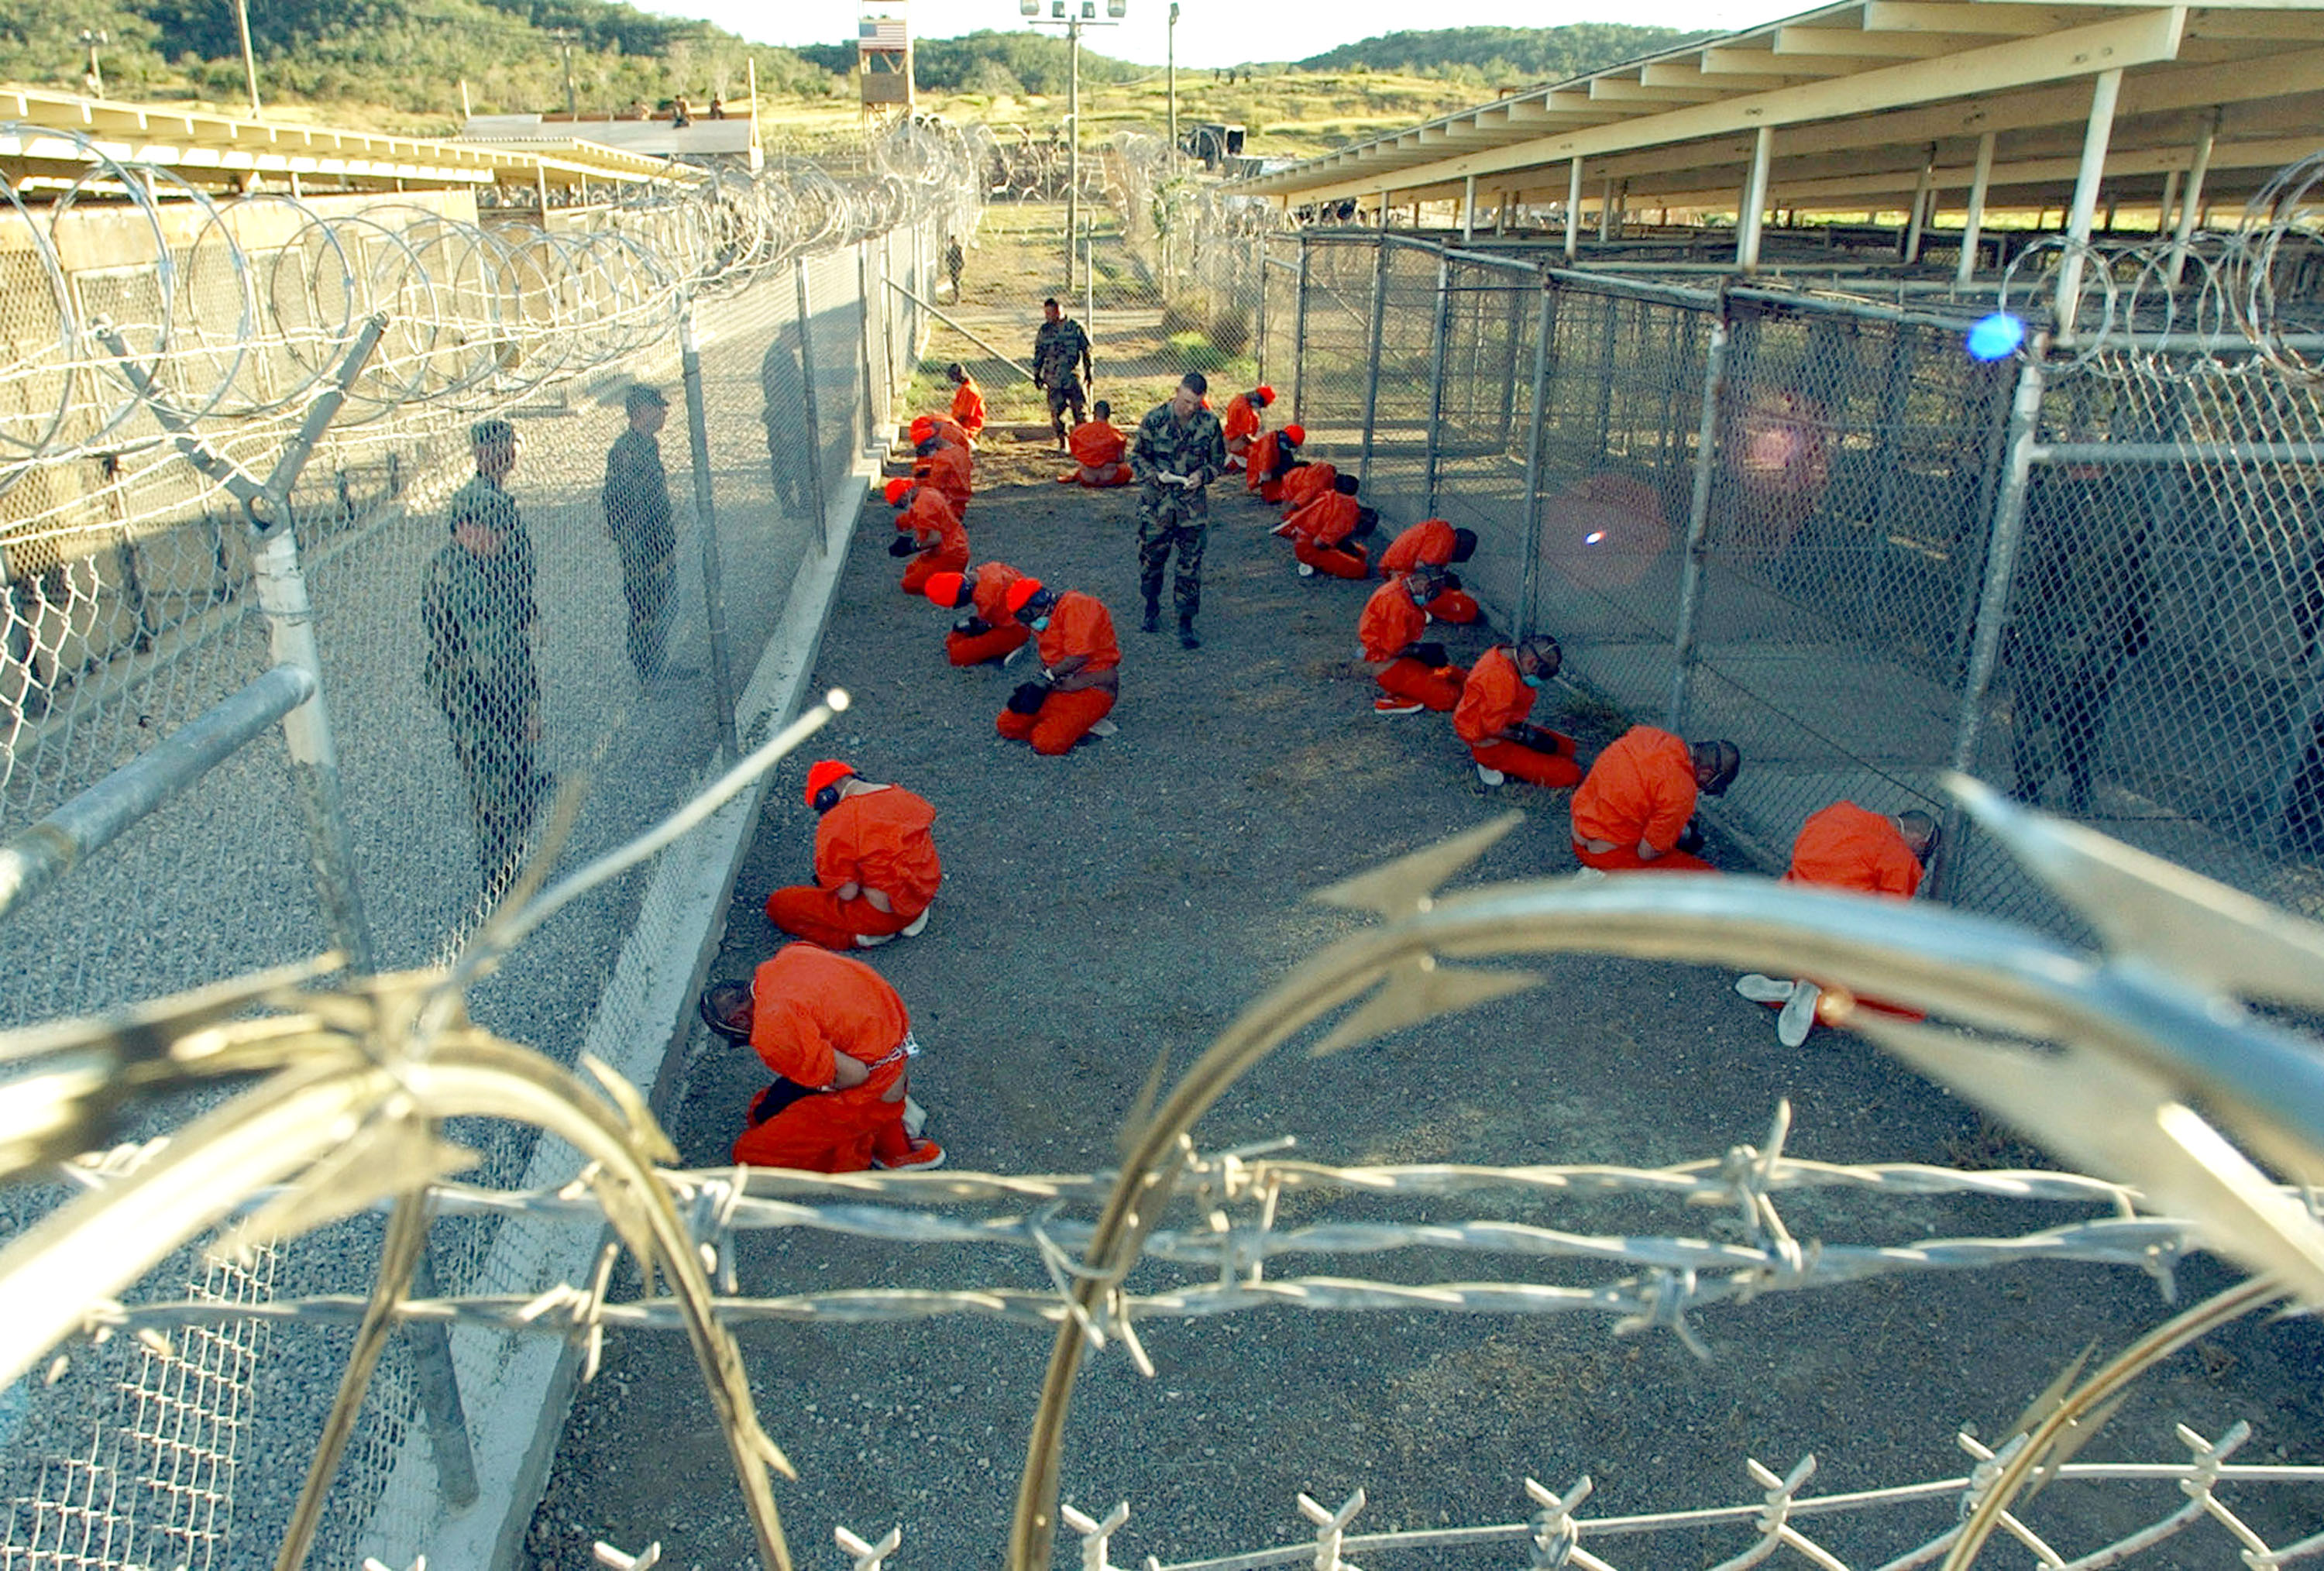 Detainees at Guantanamo in 2002. (Getty)